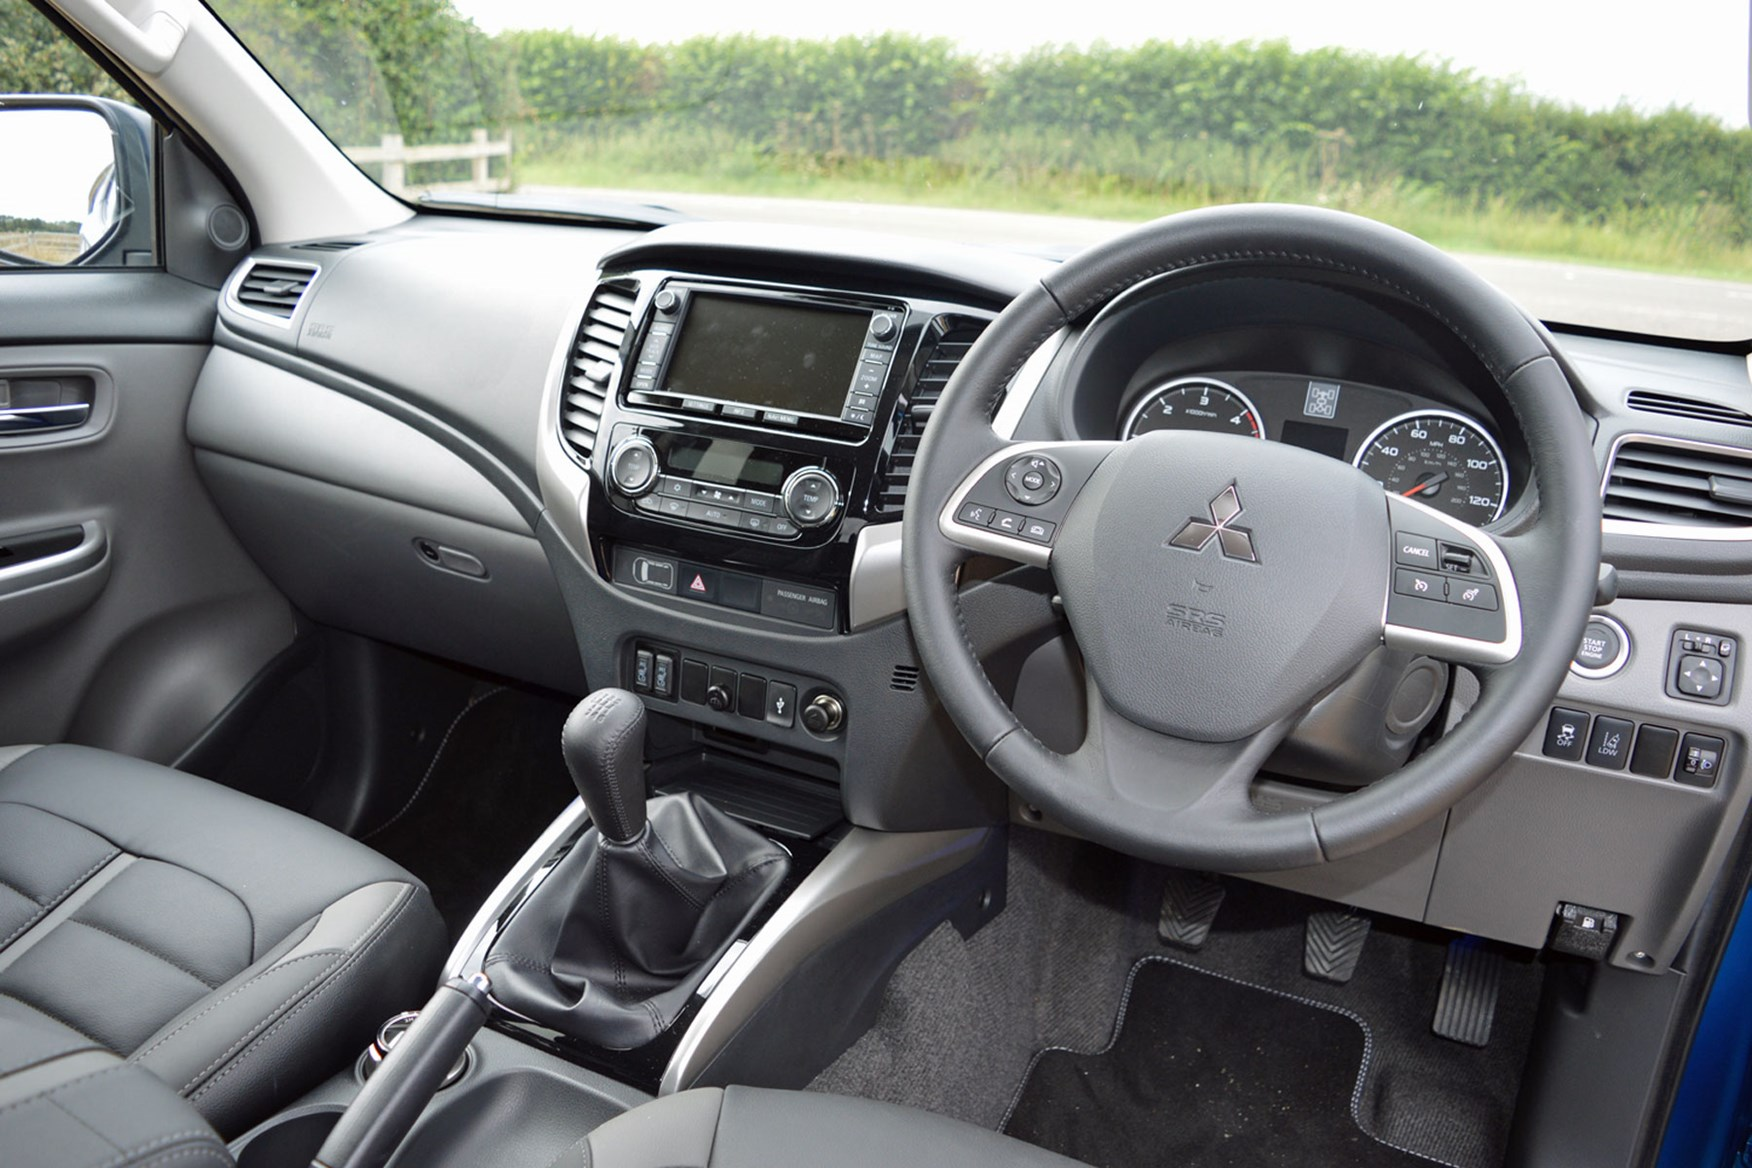 Mitsubishi L200 review, cab interior quality